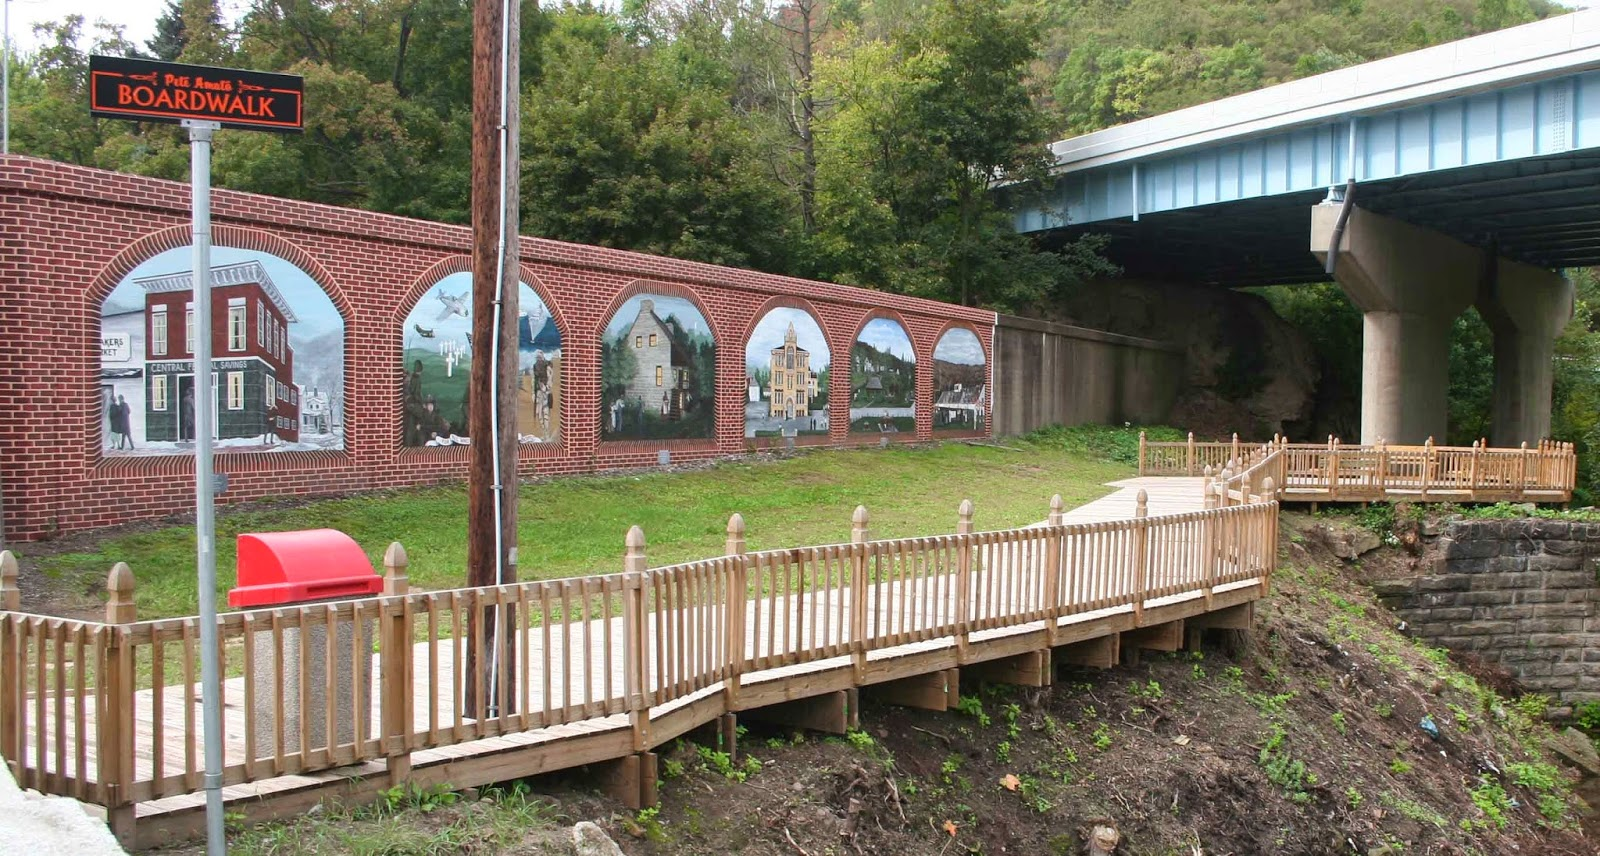 our national calamity the great easter 1913 flood june 2014 one section of the wellsville ohio floodwall murals by gina hampson are graced with a small park hampson has painted the concrete floodwall to look like